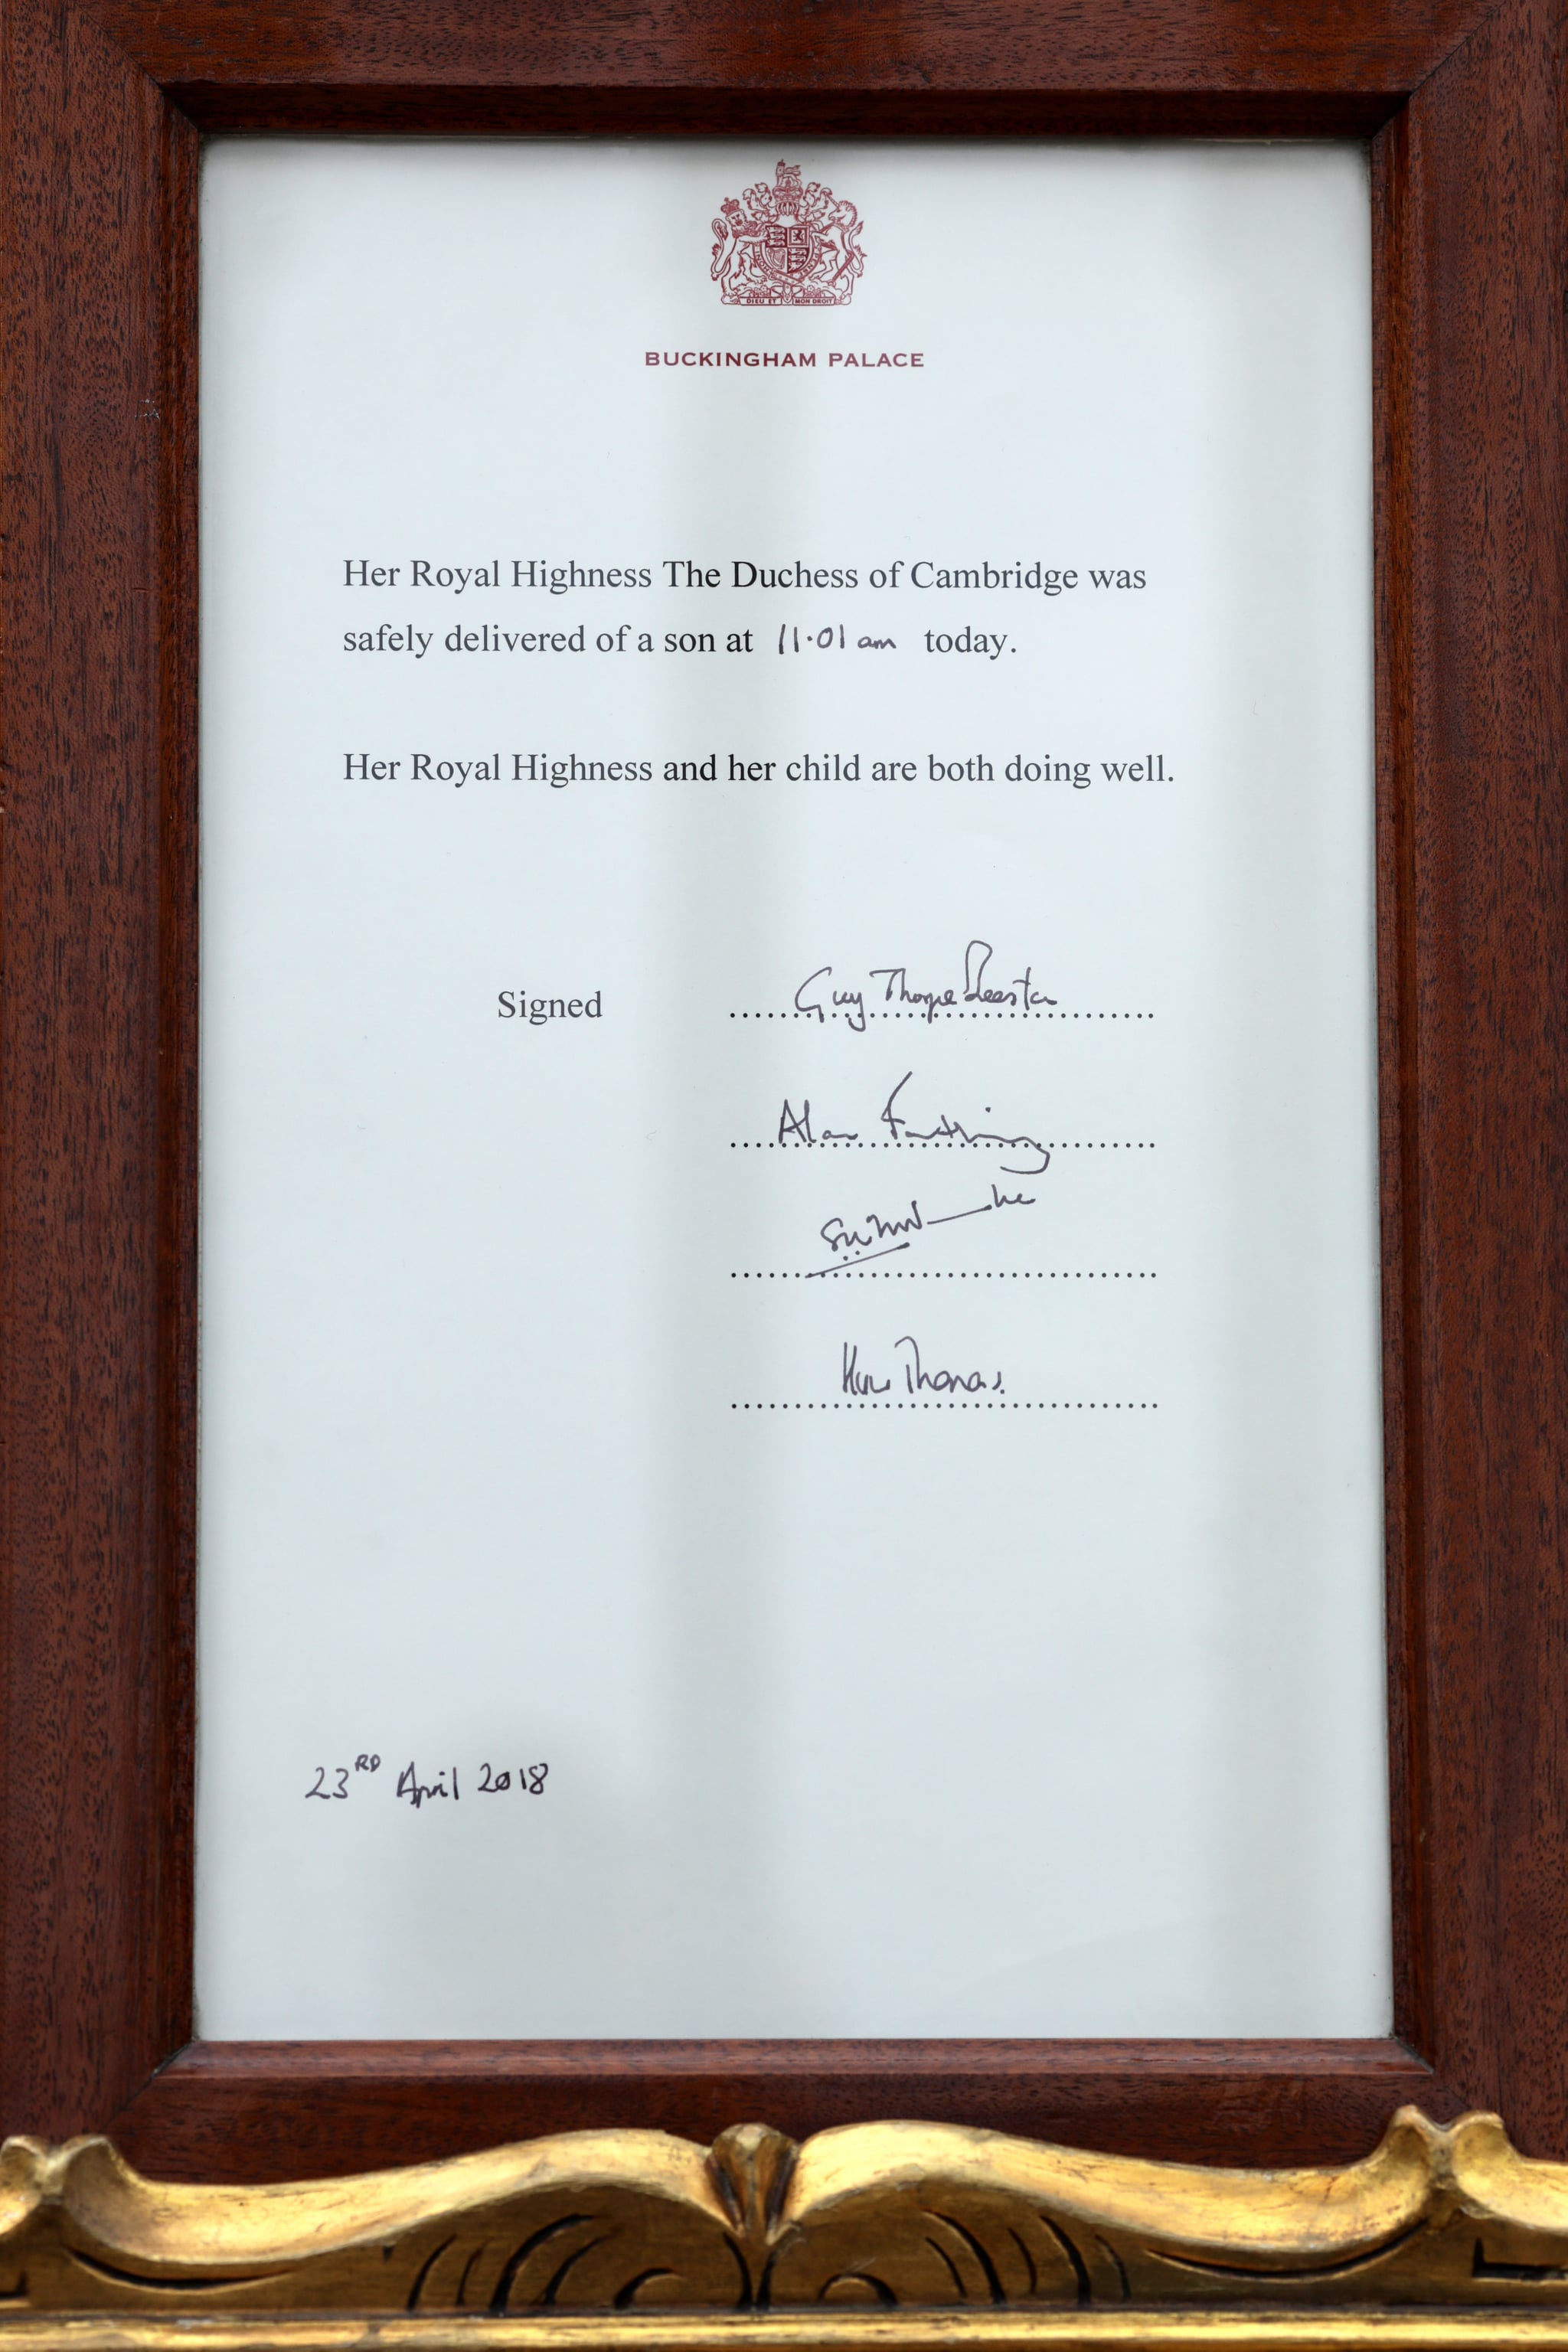 LONDON, ENGLAND - APRIL 23:  An official notice is placed on an easel in the forecourt of Buckingham Palace following the announcement that the Duchess of Cambridge has given birth to a baby boy at St Mary's Hospital on April 23, 2018 in London, England. The Duke and Duchess of Cambridge's third child was born this morning at 11:01, weighing 8lbs 7oz.  (Photo by Dan Kitwood/Getty Images)